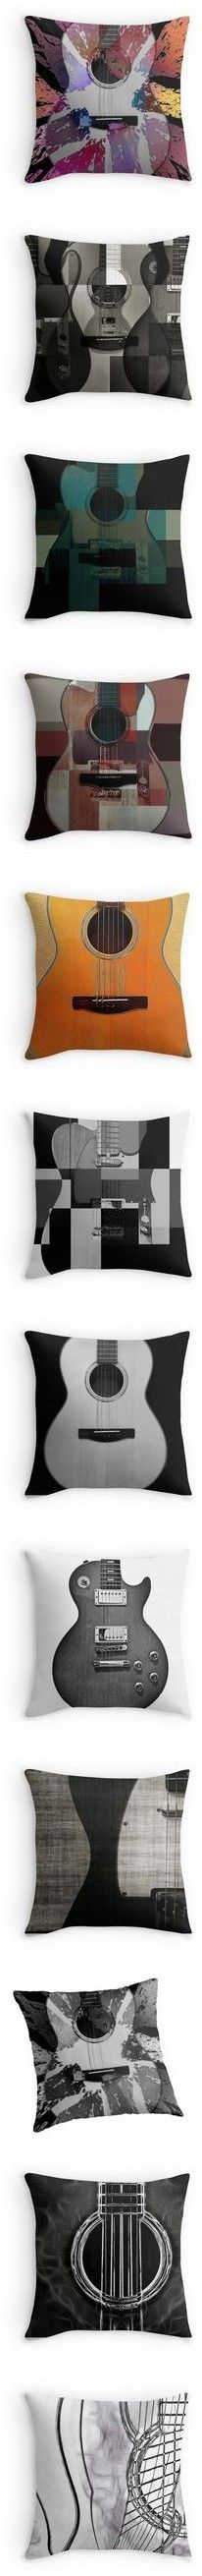 Guitar Pillows by Eric Rasmussen by christy-leigh-1 on Polyvore featuring pillow, home, home decor, metal home decor, teal home decor, teal home accessories, teal blue home decor, wall art, photography wall art and metal posters